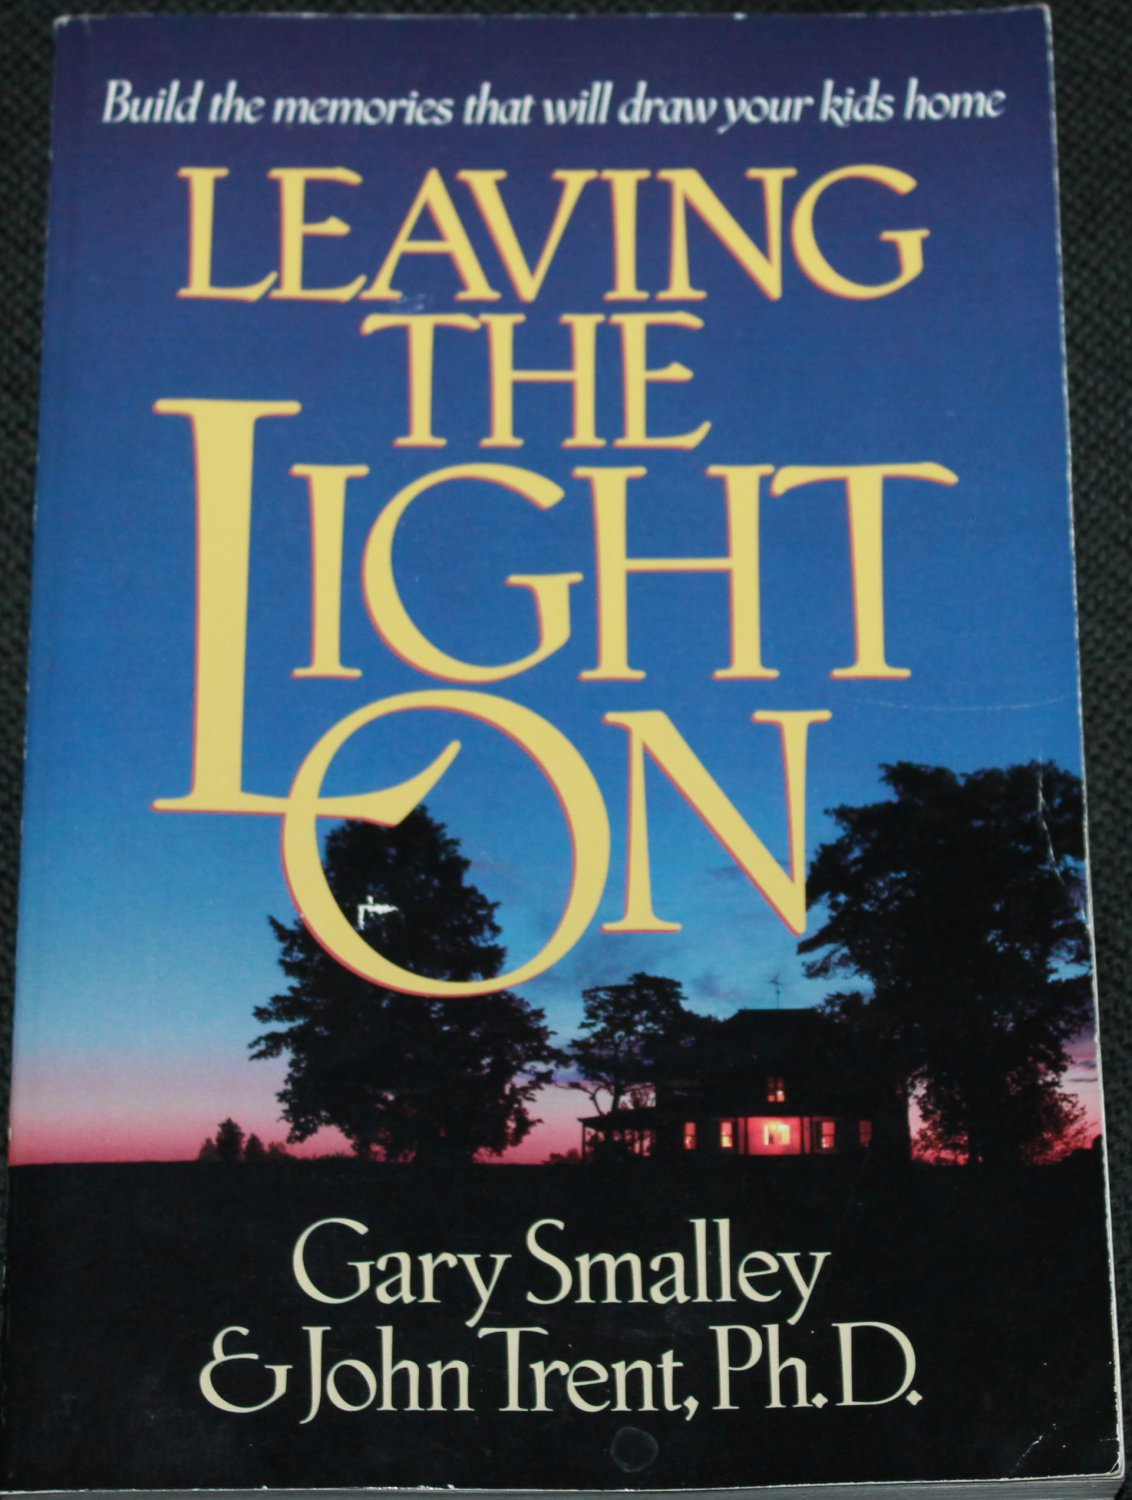 Leaving the Light On -  family parenting by Gary Smalley - parents child teen children kids